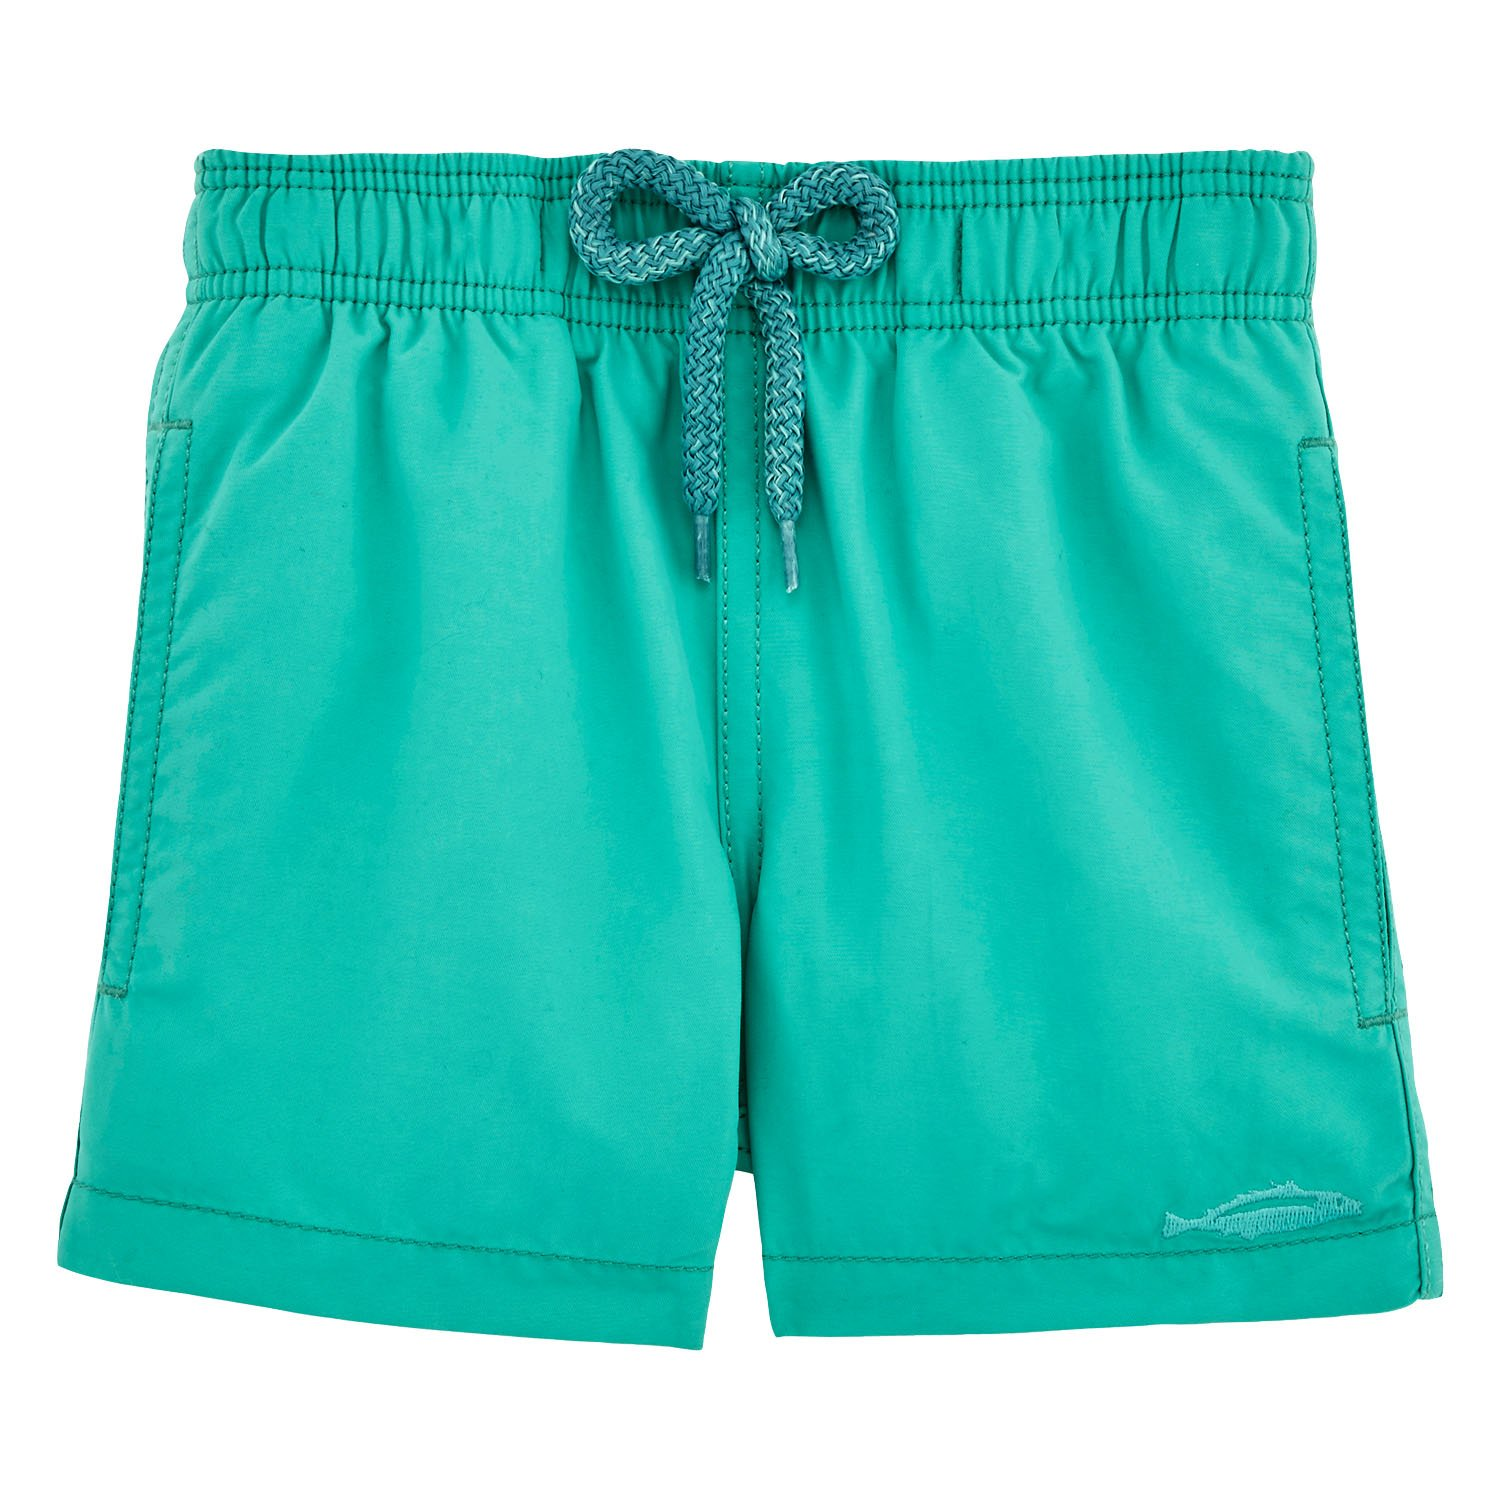 Vilebrequin Water-reactive Sardines à l'Huile Swim Shorts - Boys - veronese green - 8Yrs by Vilebrequin